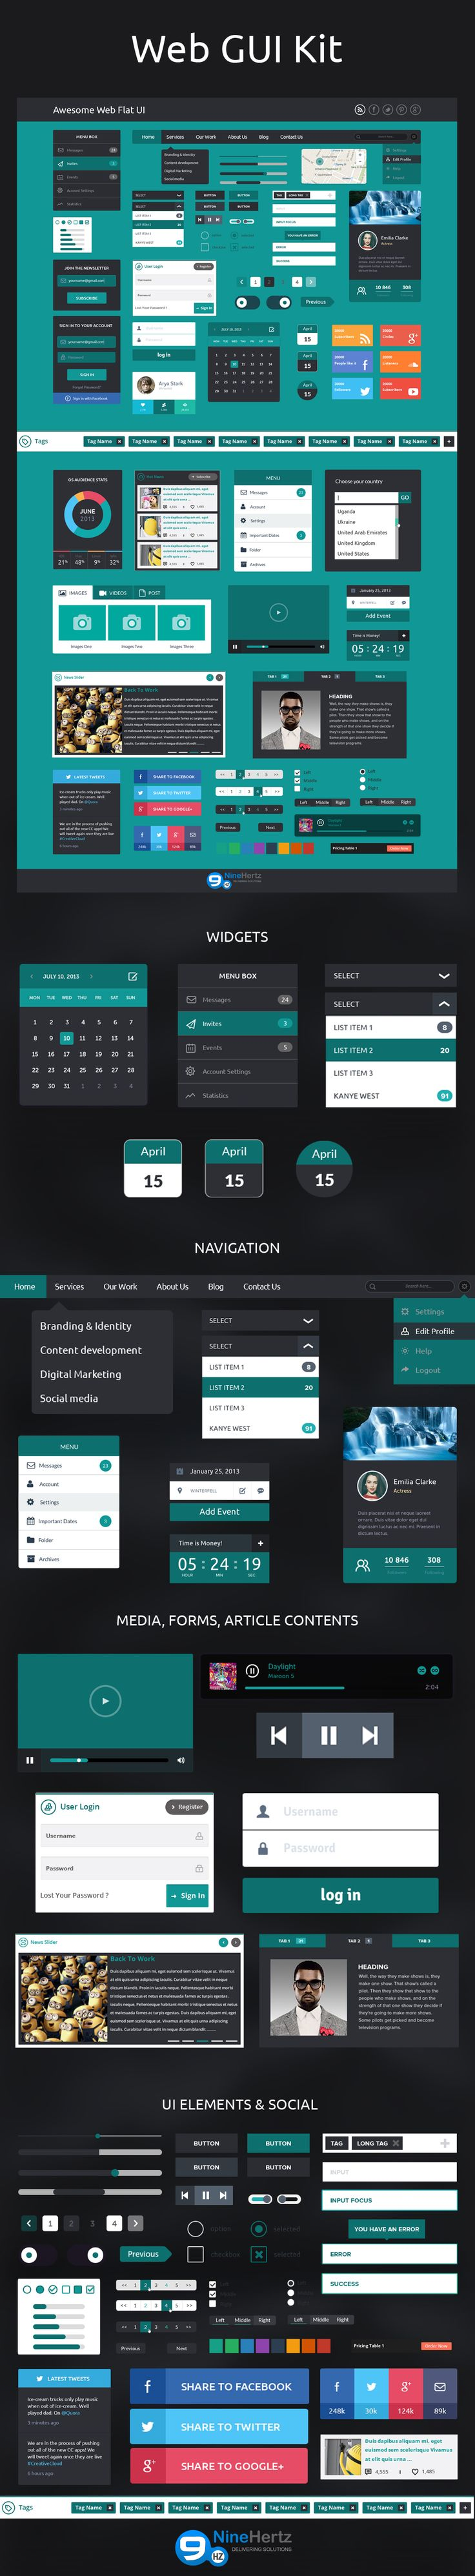 Flat design is popular in web. All required elements to design a web flat UI is free to download with original PSD designed by Nine Hertz Expert Designers.